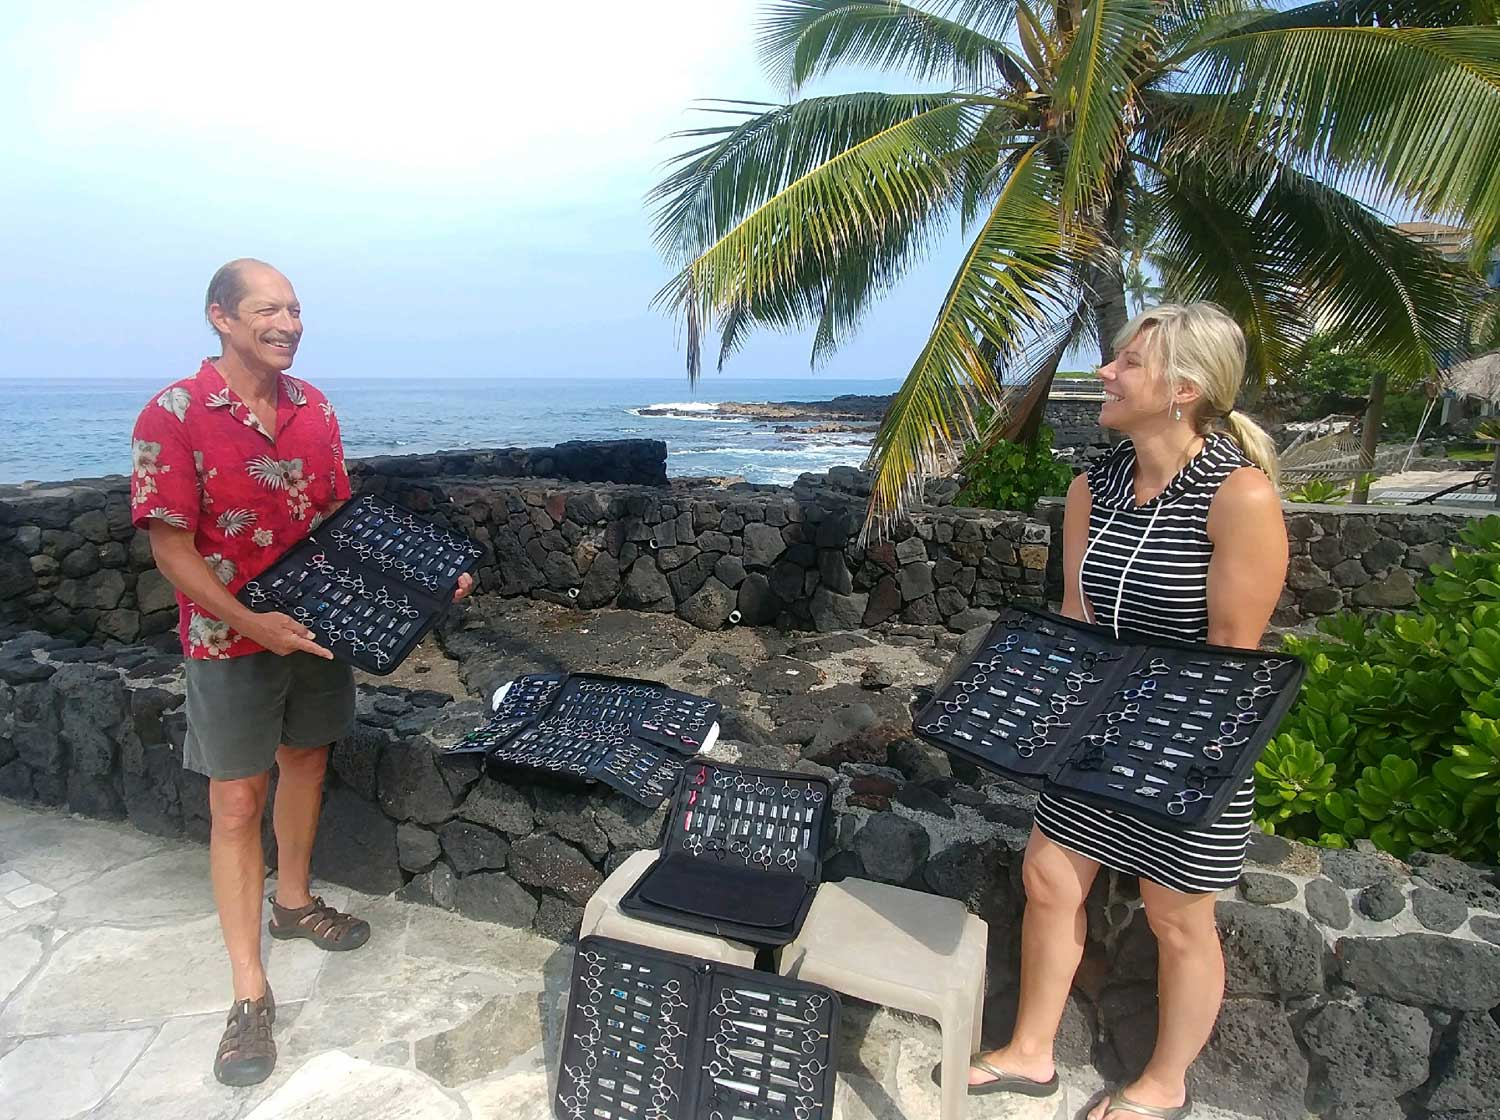 Kona Tiki Hotel manager welcomes Terry to Hawaii for another successful business trip.